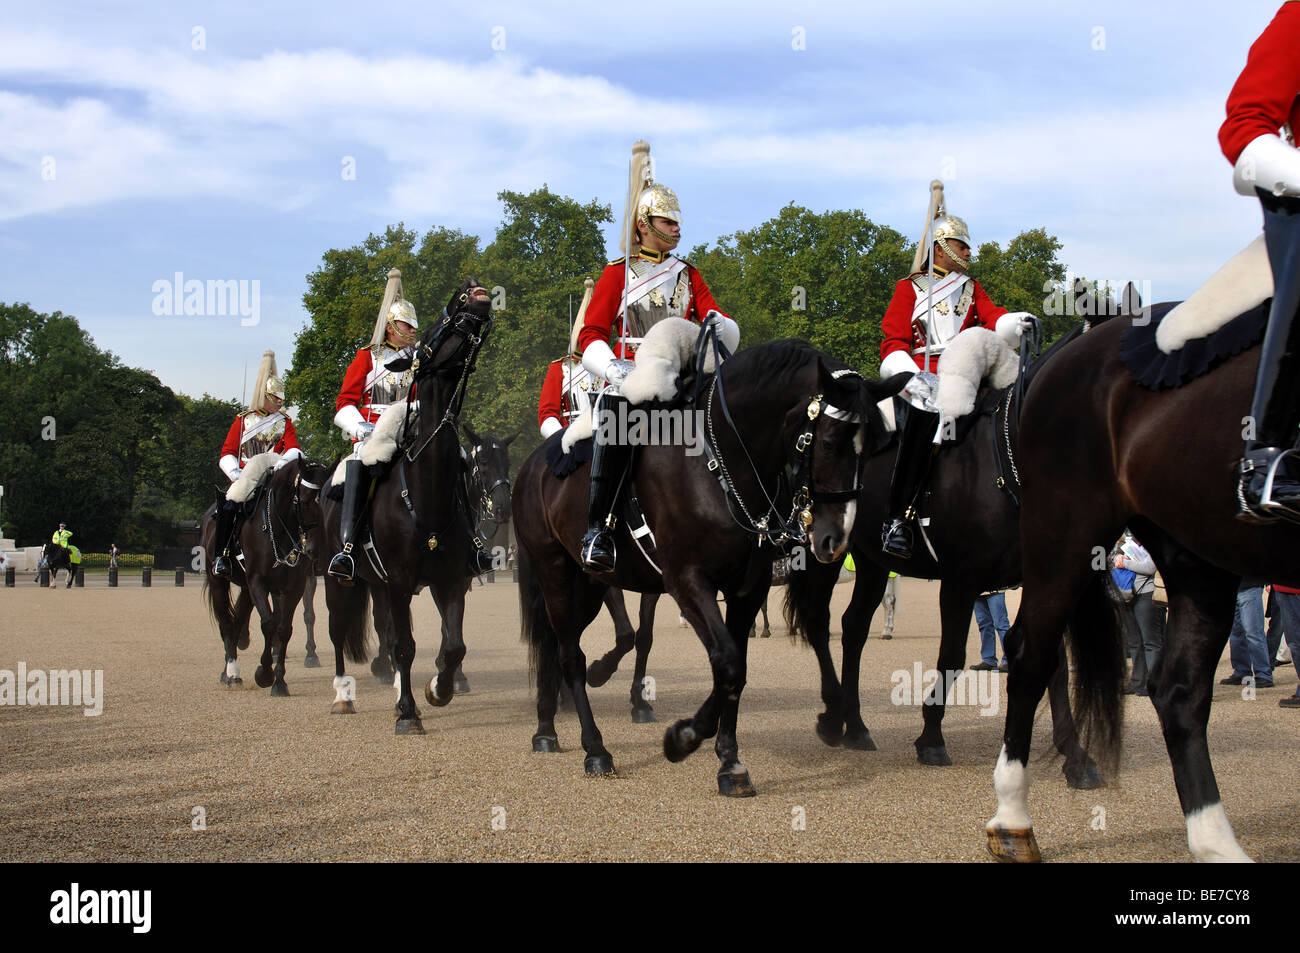 Changing of the Guard, Horse Guards Parade, London, England